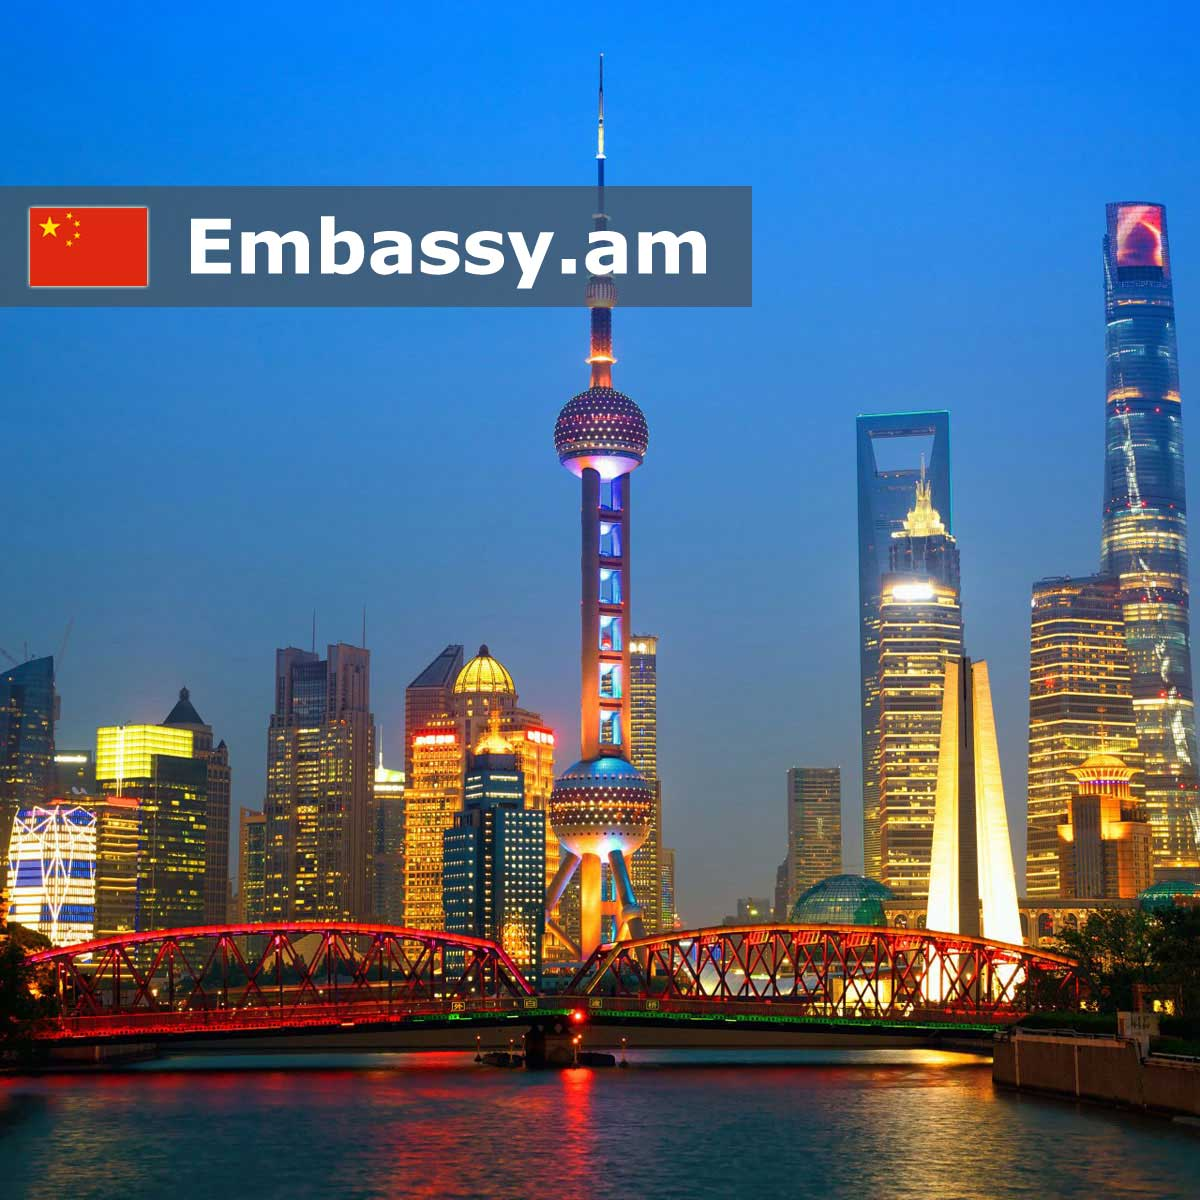 Shanghai - Hotels in China - Embassy.am